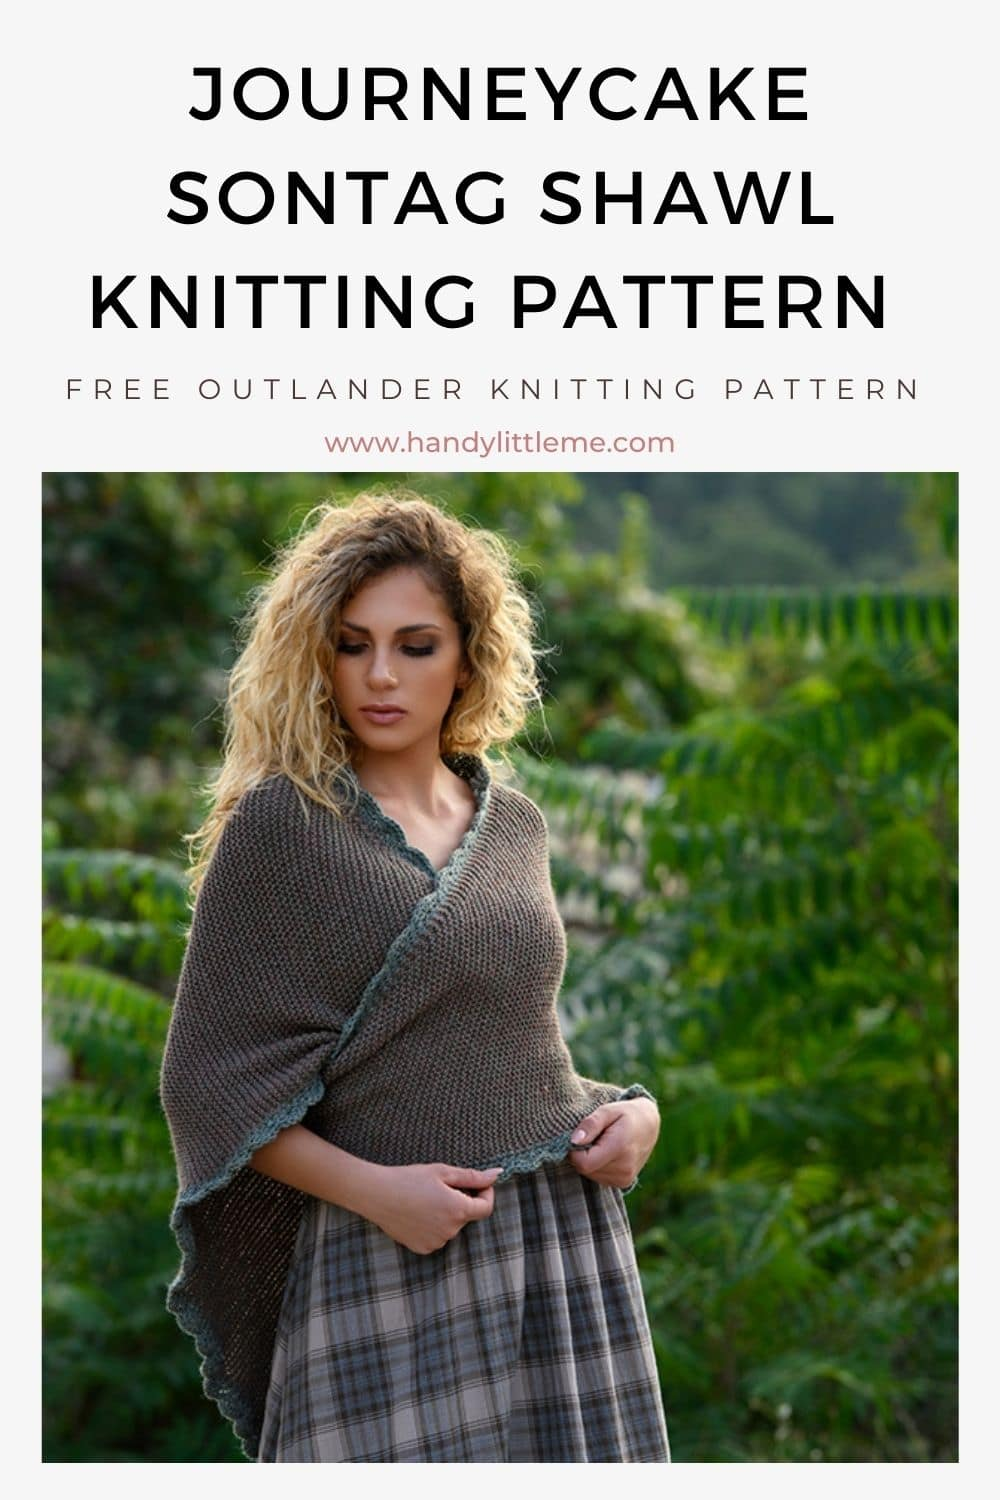 Journeycake sontag shawl knitting pattern